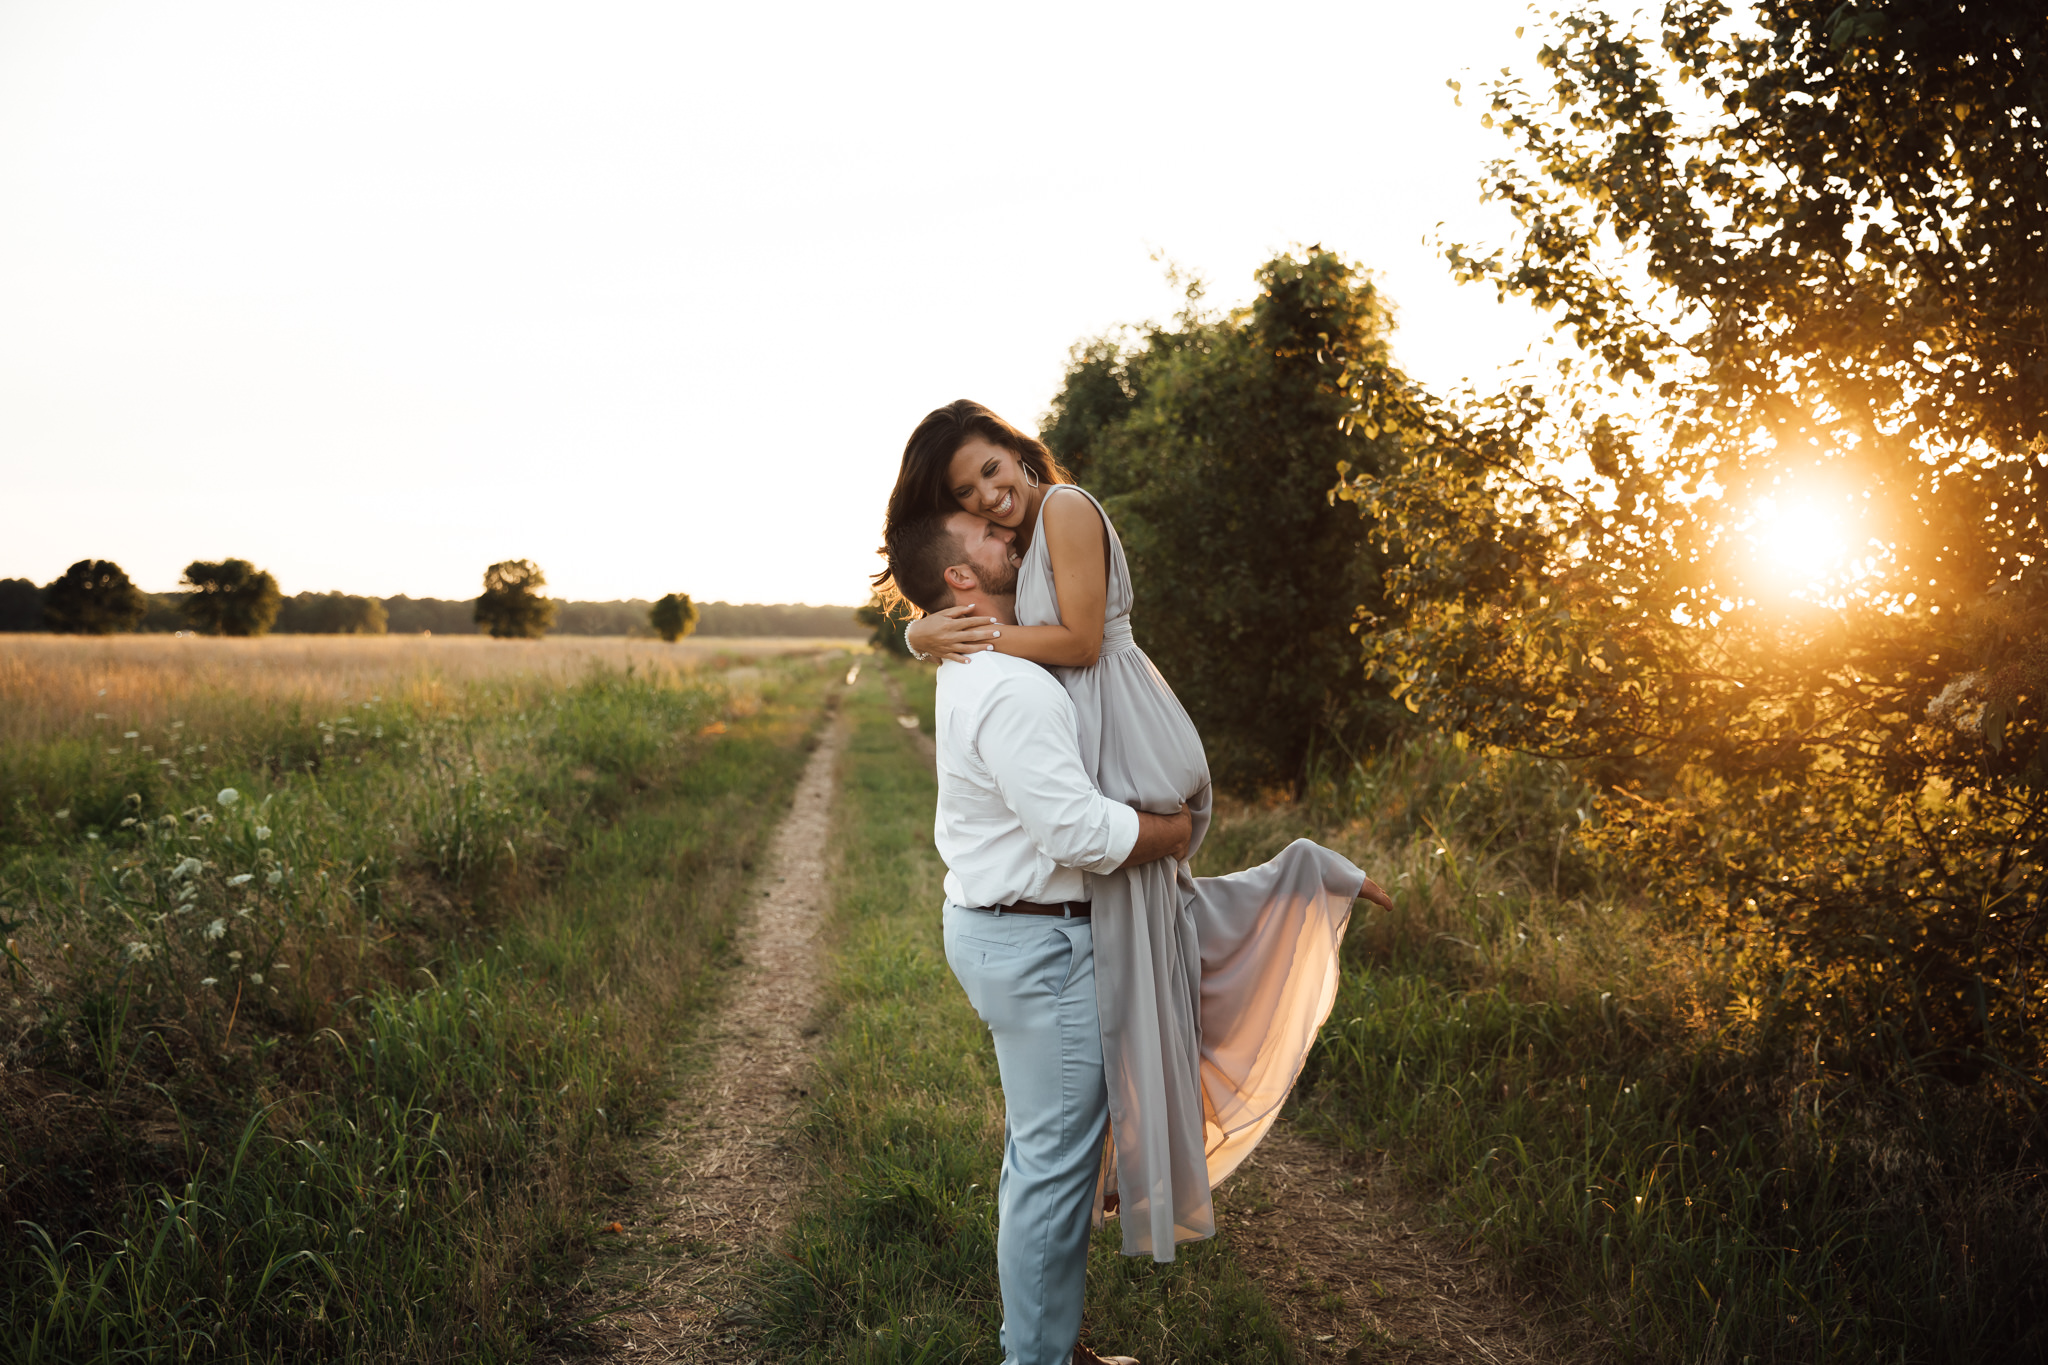 engagement-pictures-memphis-engagement-photographer-thewarmtharoundyou-11.jpg